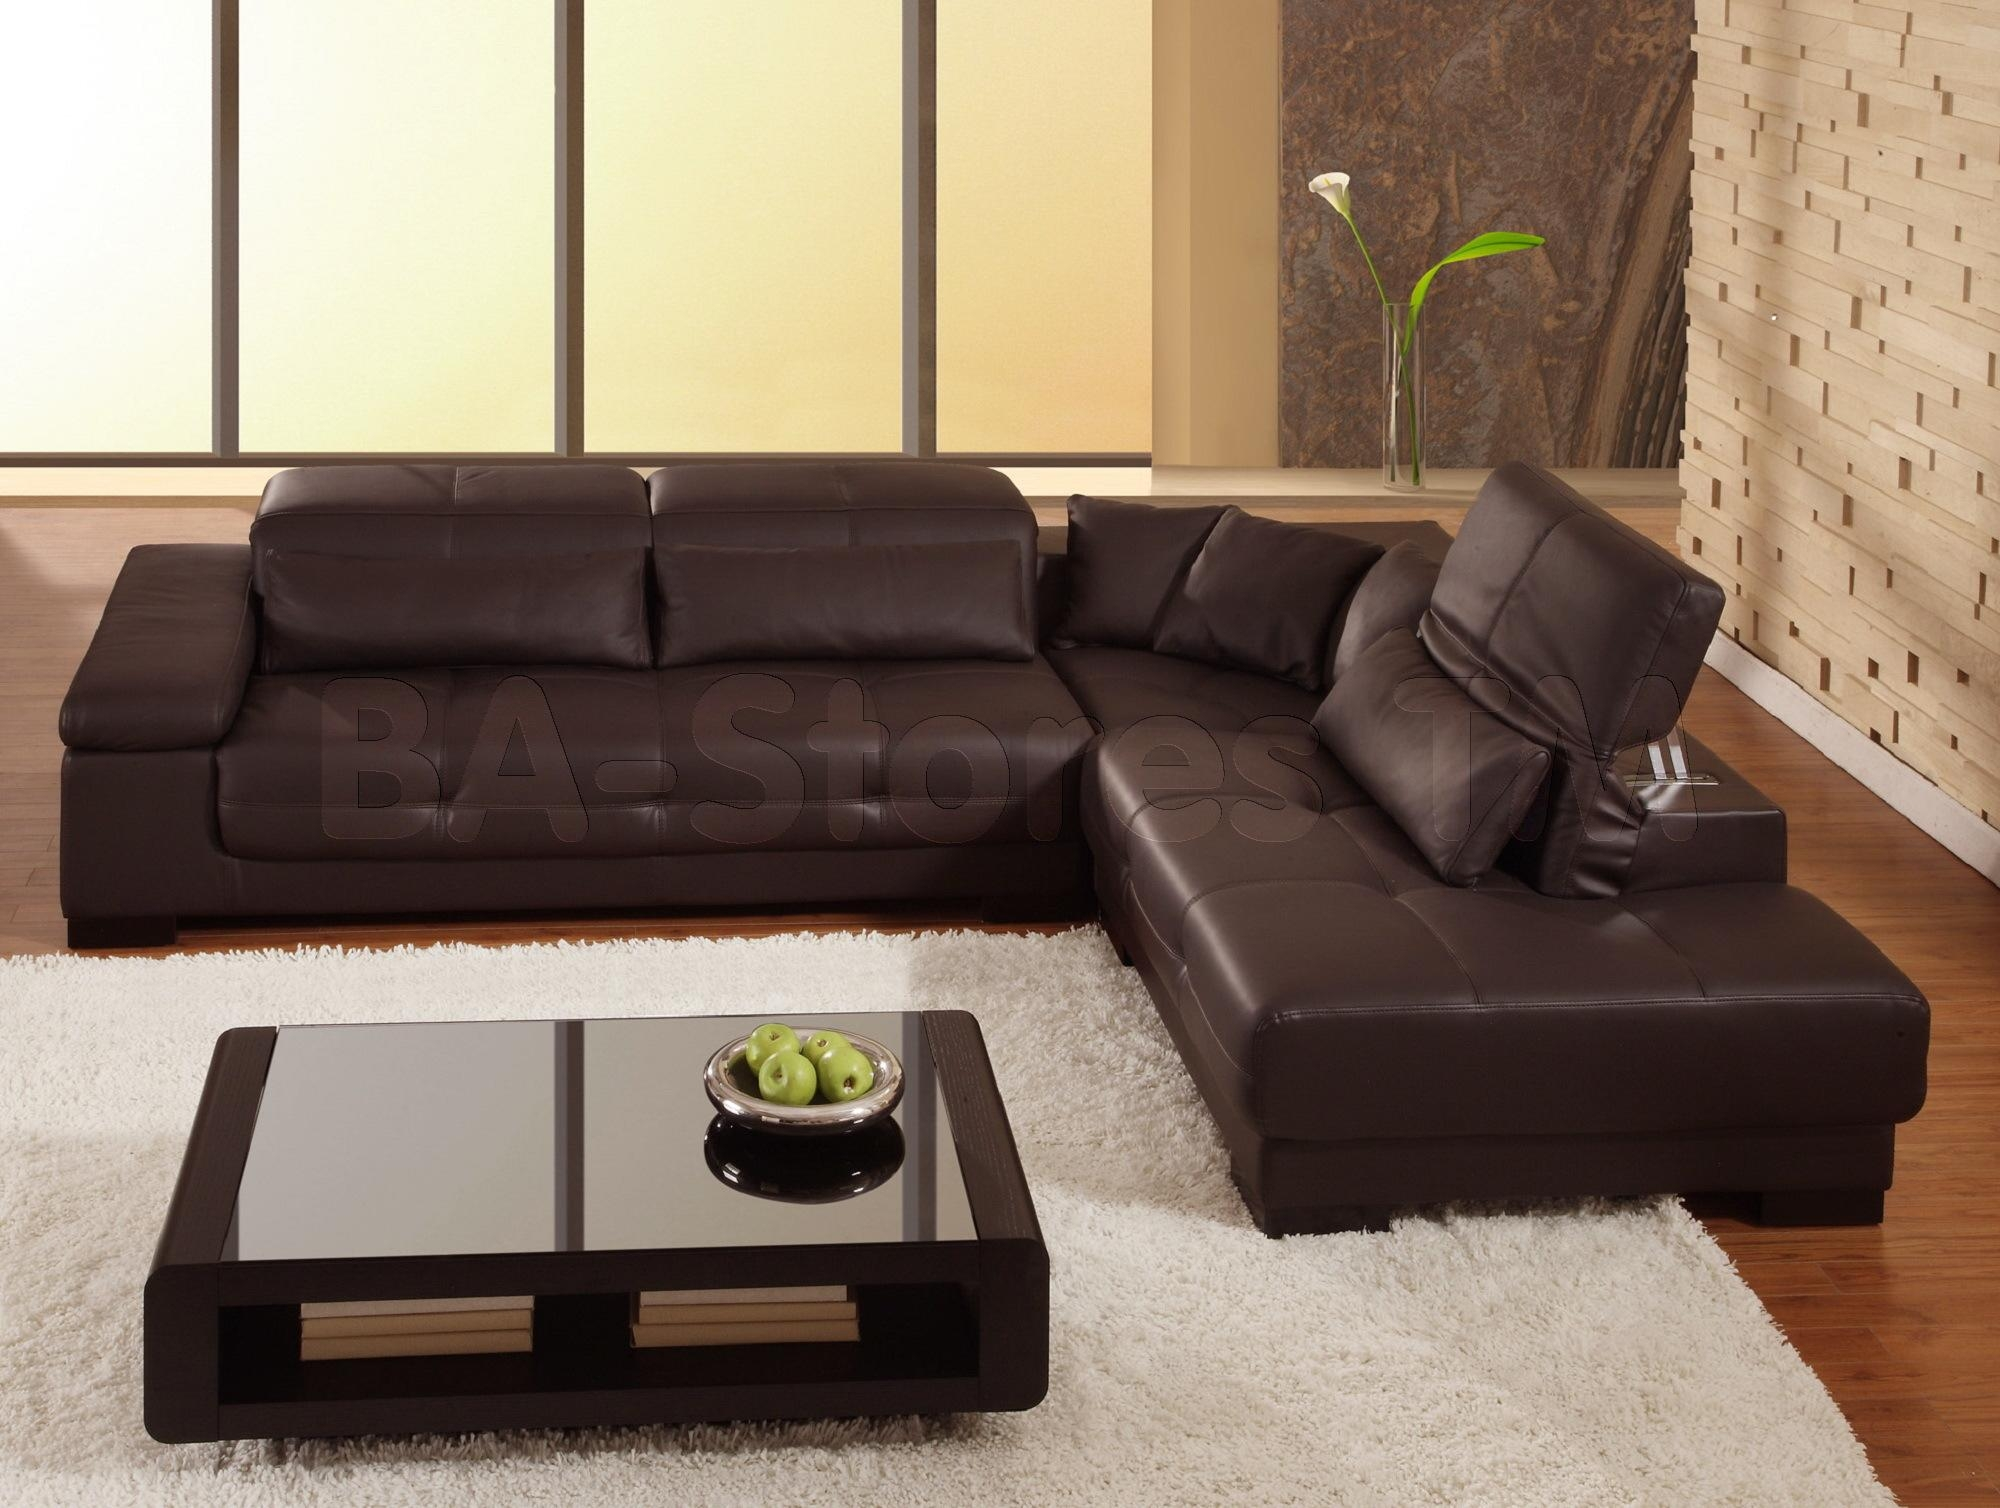 Clearance Leather Sectional Sofas | Tehranmix Decoration Intended For Stacey Leather Sectional (View 6 of 20)